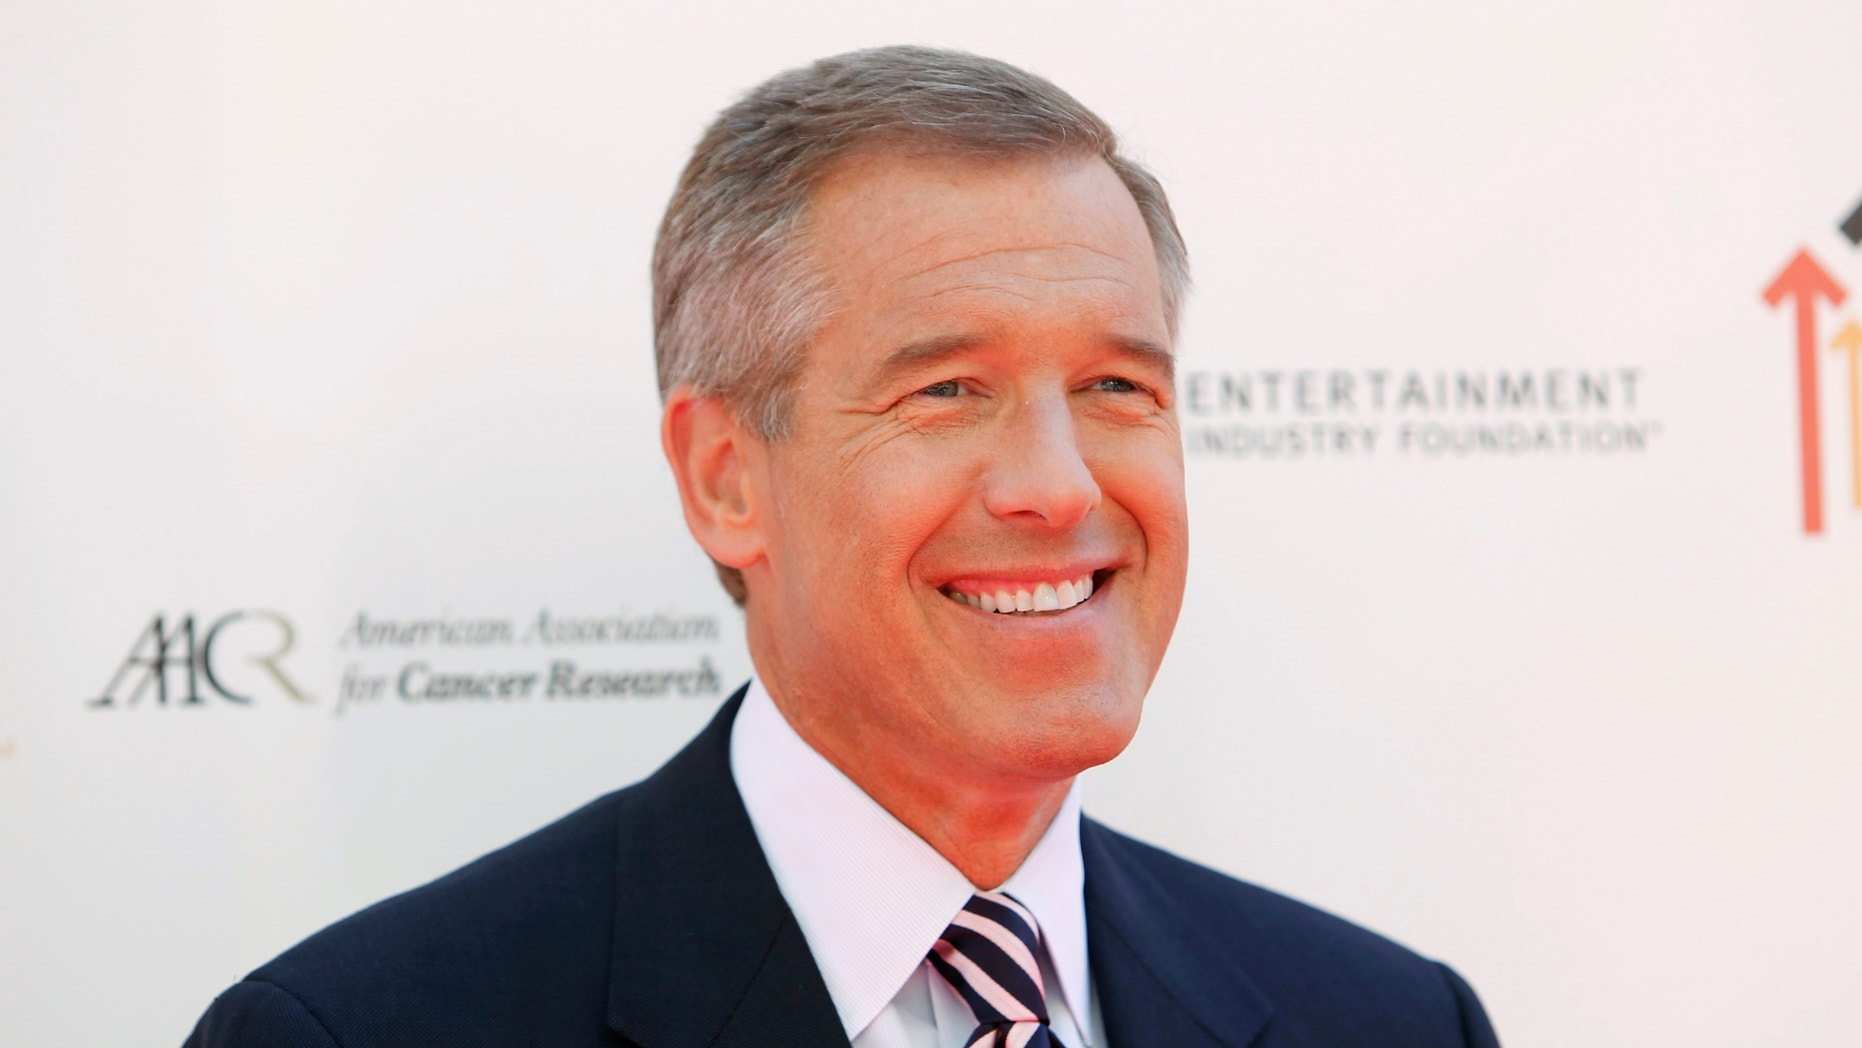 """NBC news anchor Brian Williams poses at the """"Stand Up To Cancer"""" television event, aimed at raising funds to accelerate innovative cancer research, at the Sony Studios Lot in Culver City, California September 10, 2010."""